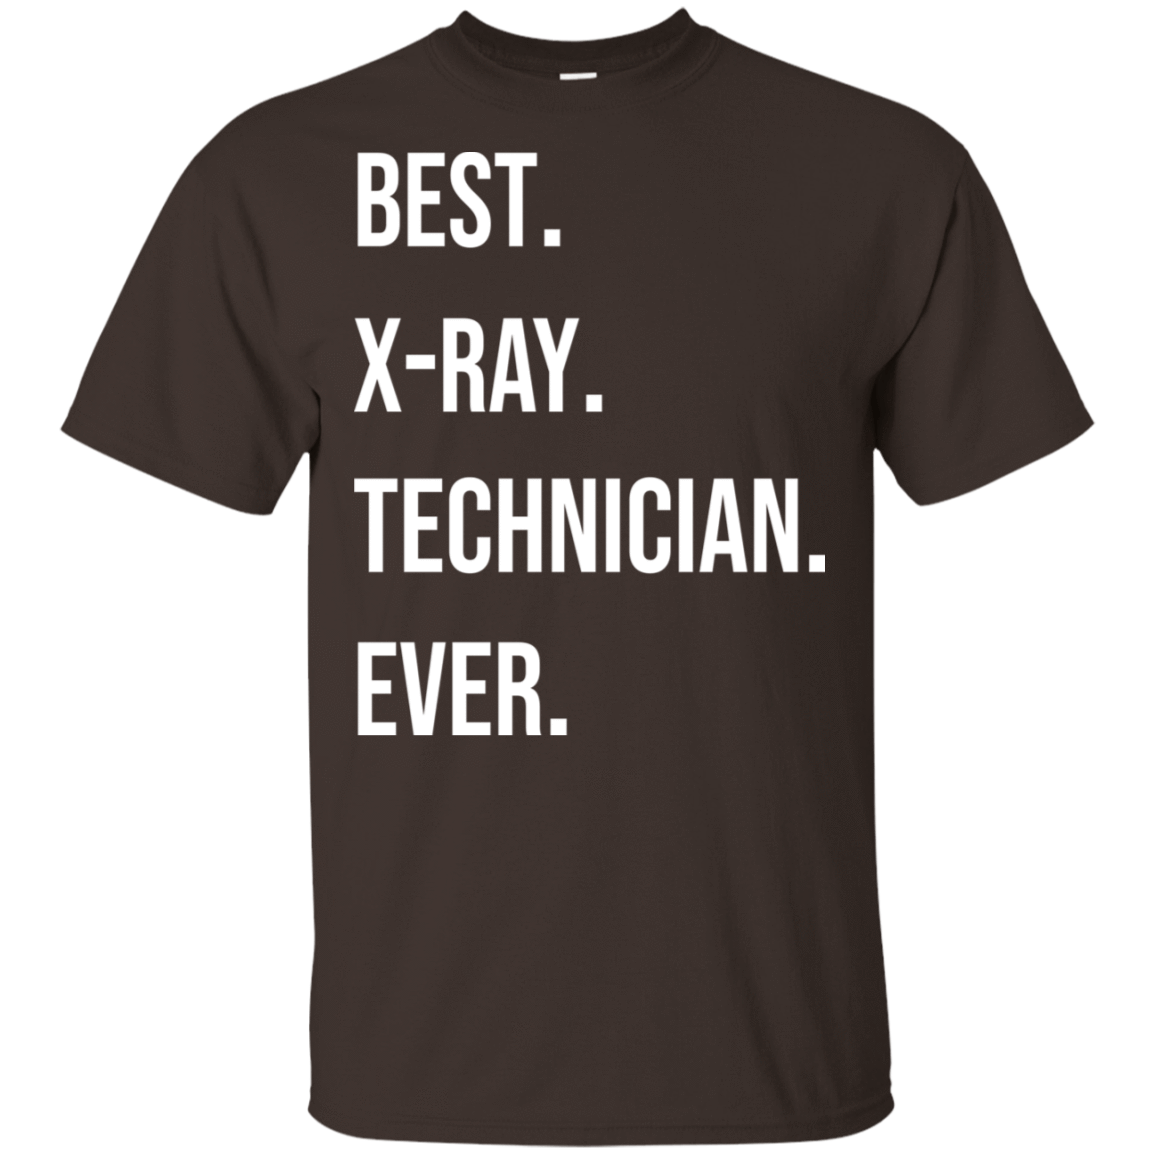 Best X-ray Technician Ever T-Shirts, Hoodies, Tank 22-2283-78917293-12087 - Tee Ript